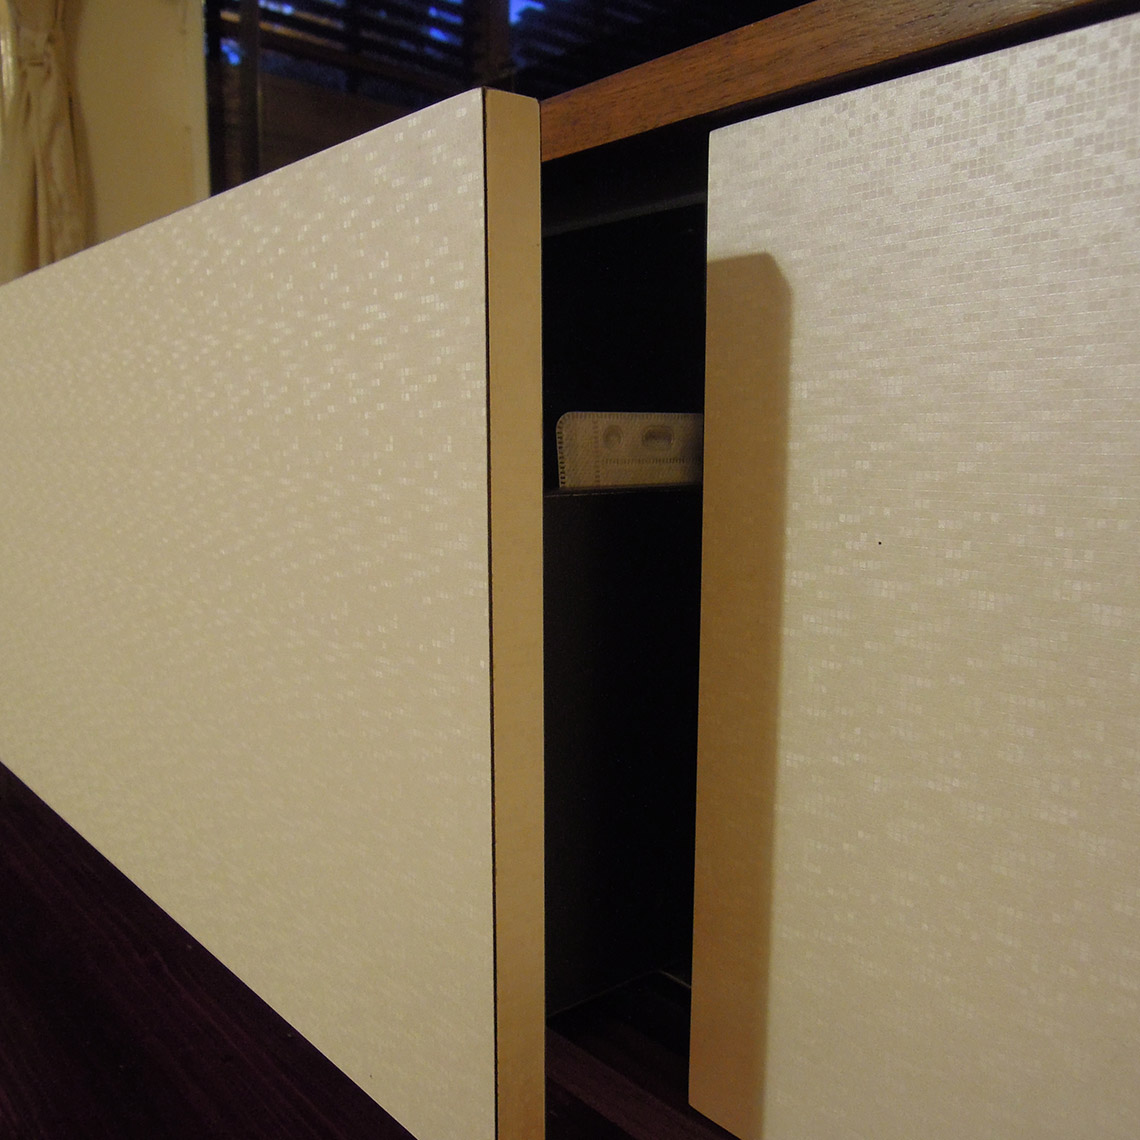 Touch-close drawers